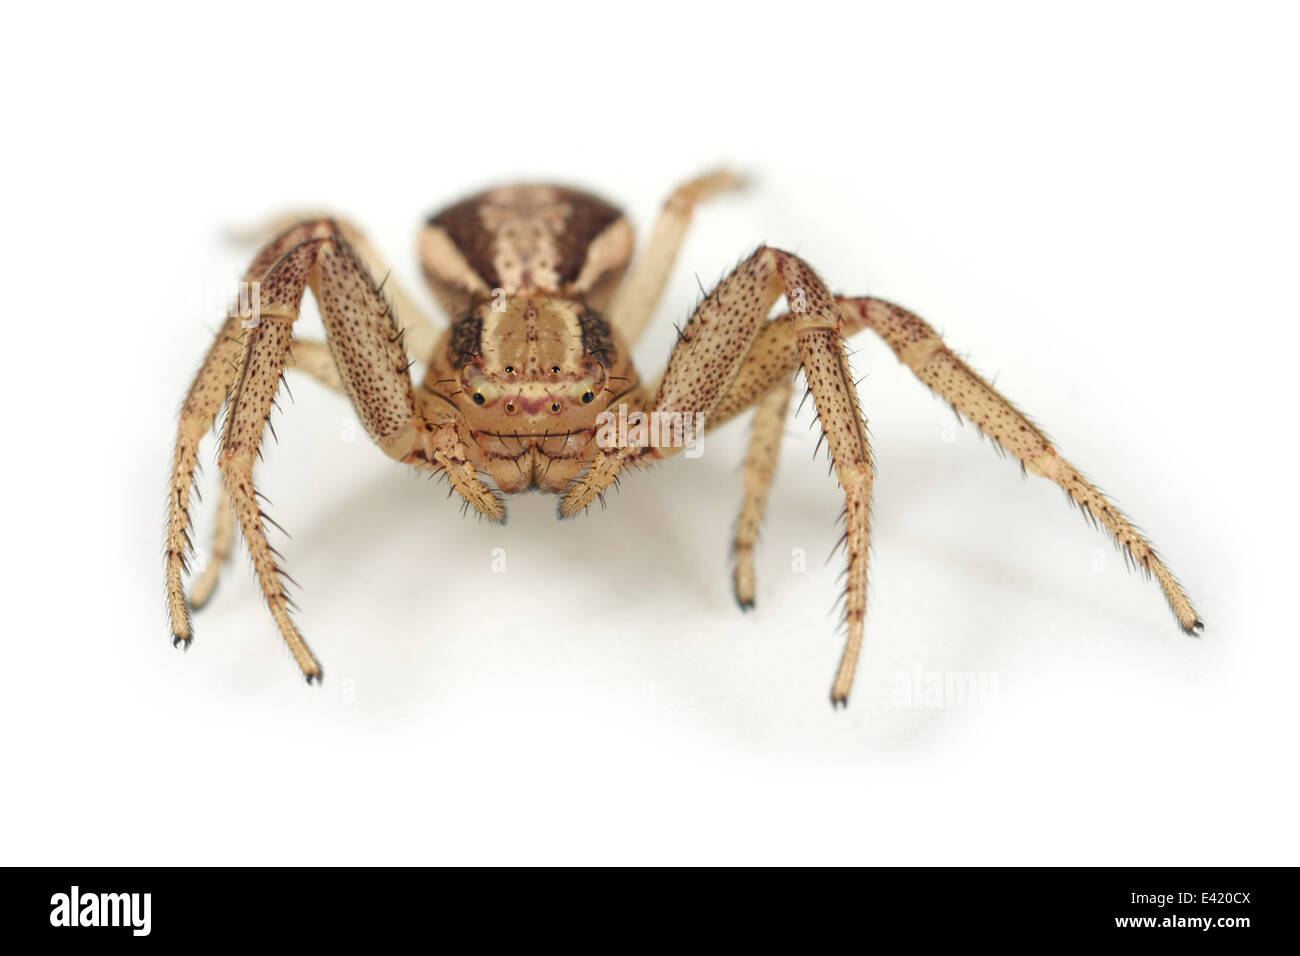 Female Xysticus ulmi spider, part of the family Thomisidae - Crab spiders. Isolated on white background. Stock Photo